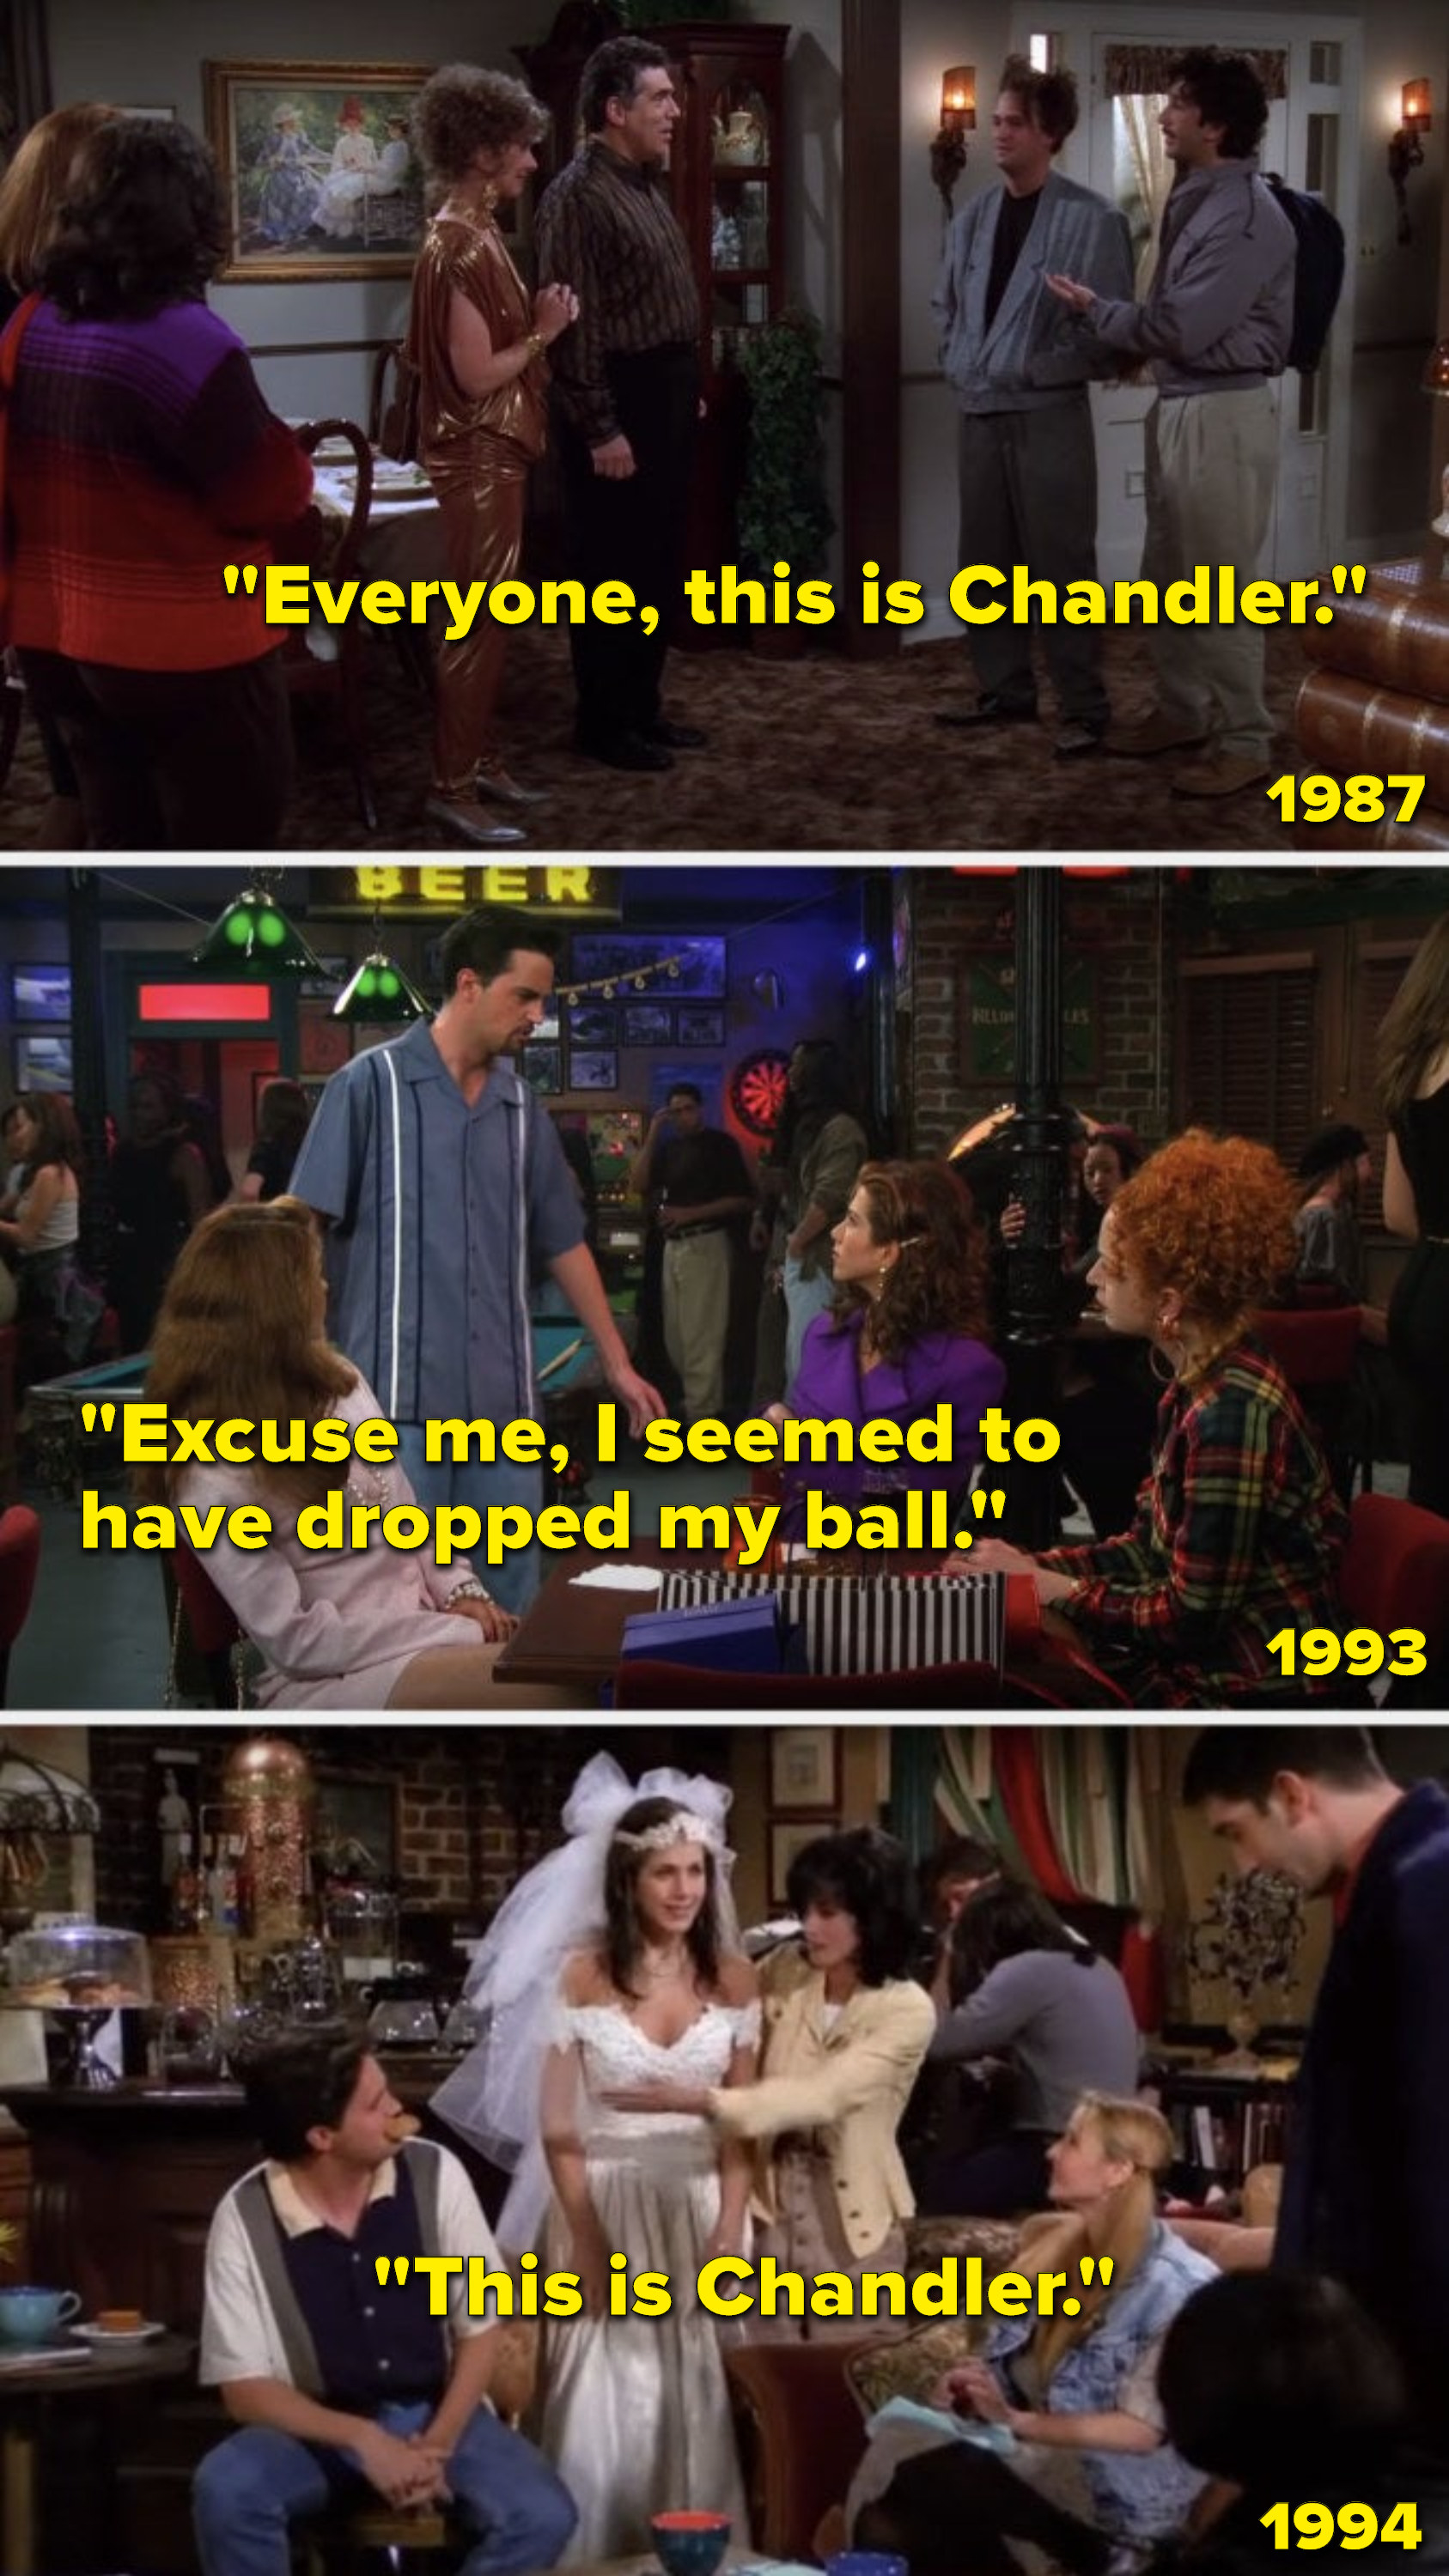 """In 1987, Ross says, """"Everyone, this is Chandler,"""" to a group that includes Rachel, in 1993, Chandler says to Rachel, """"Excuse me, I seemed to have dropped my ball,"""" and in 1994, Monica introduces Chandler to Rachel by saying, """"This is Chandler"""""""